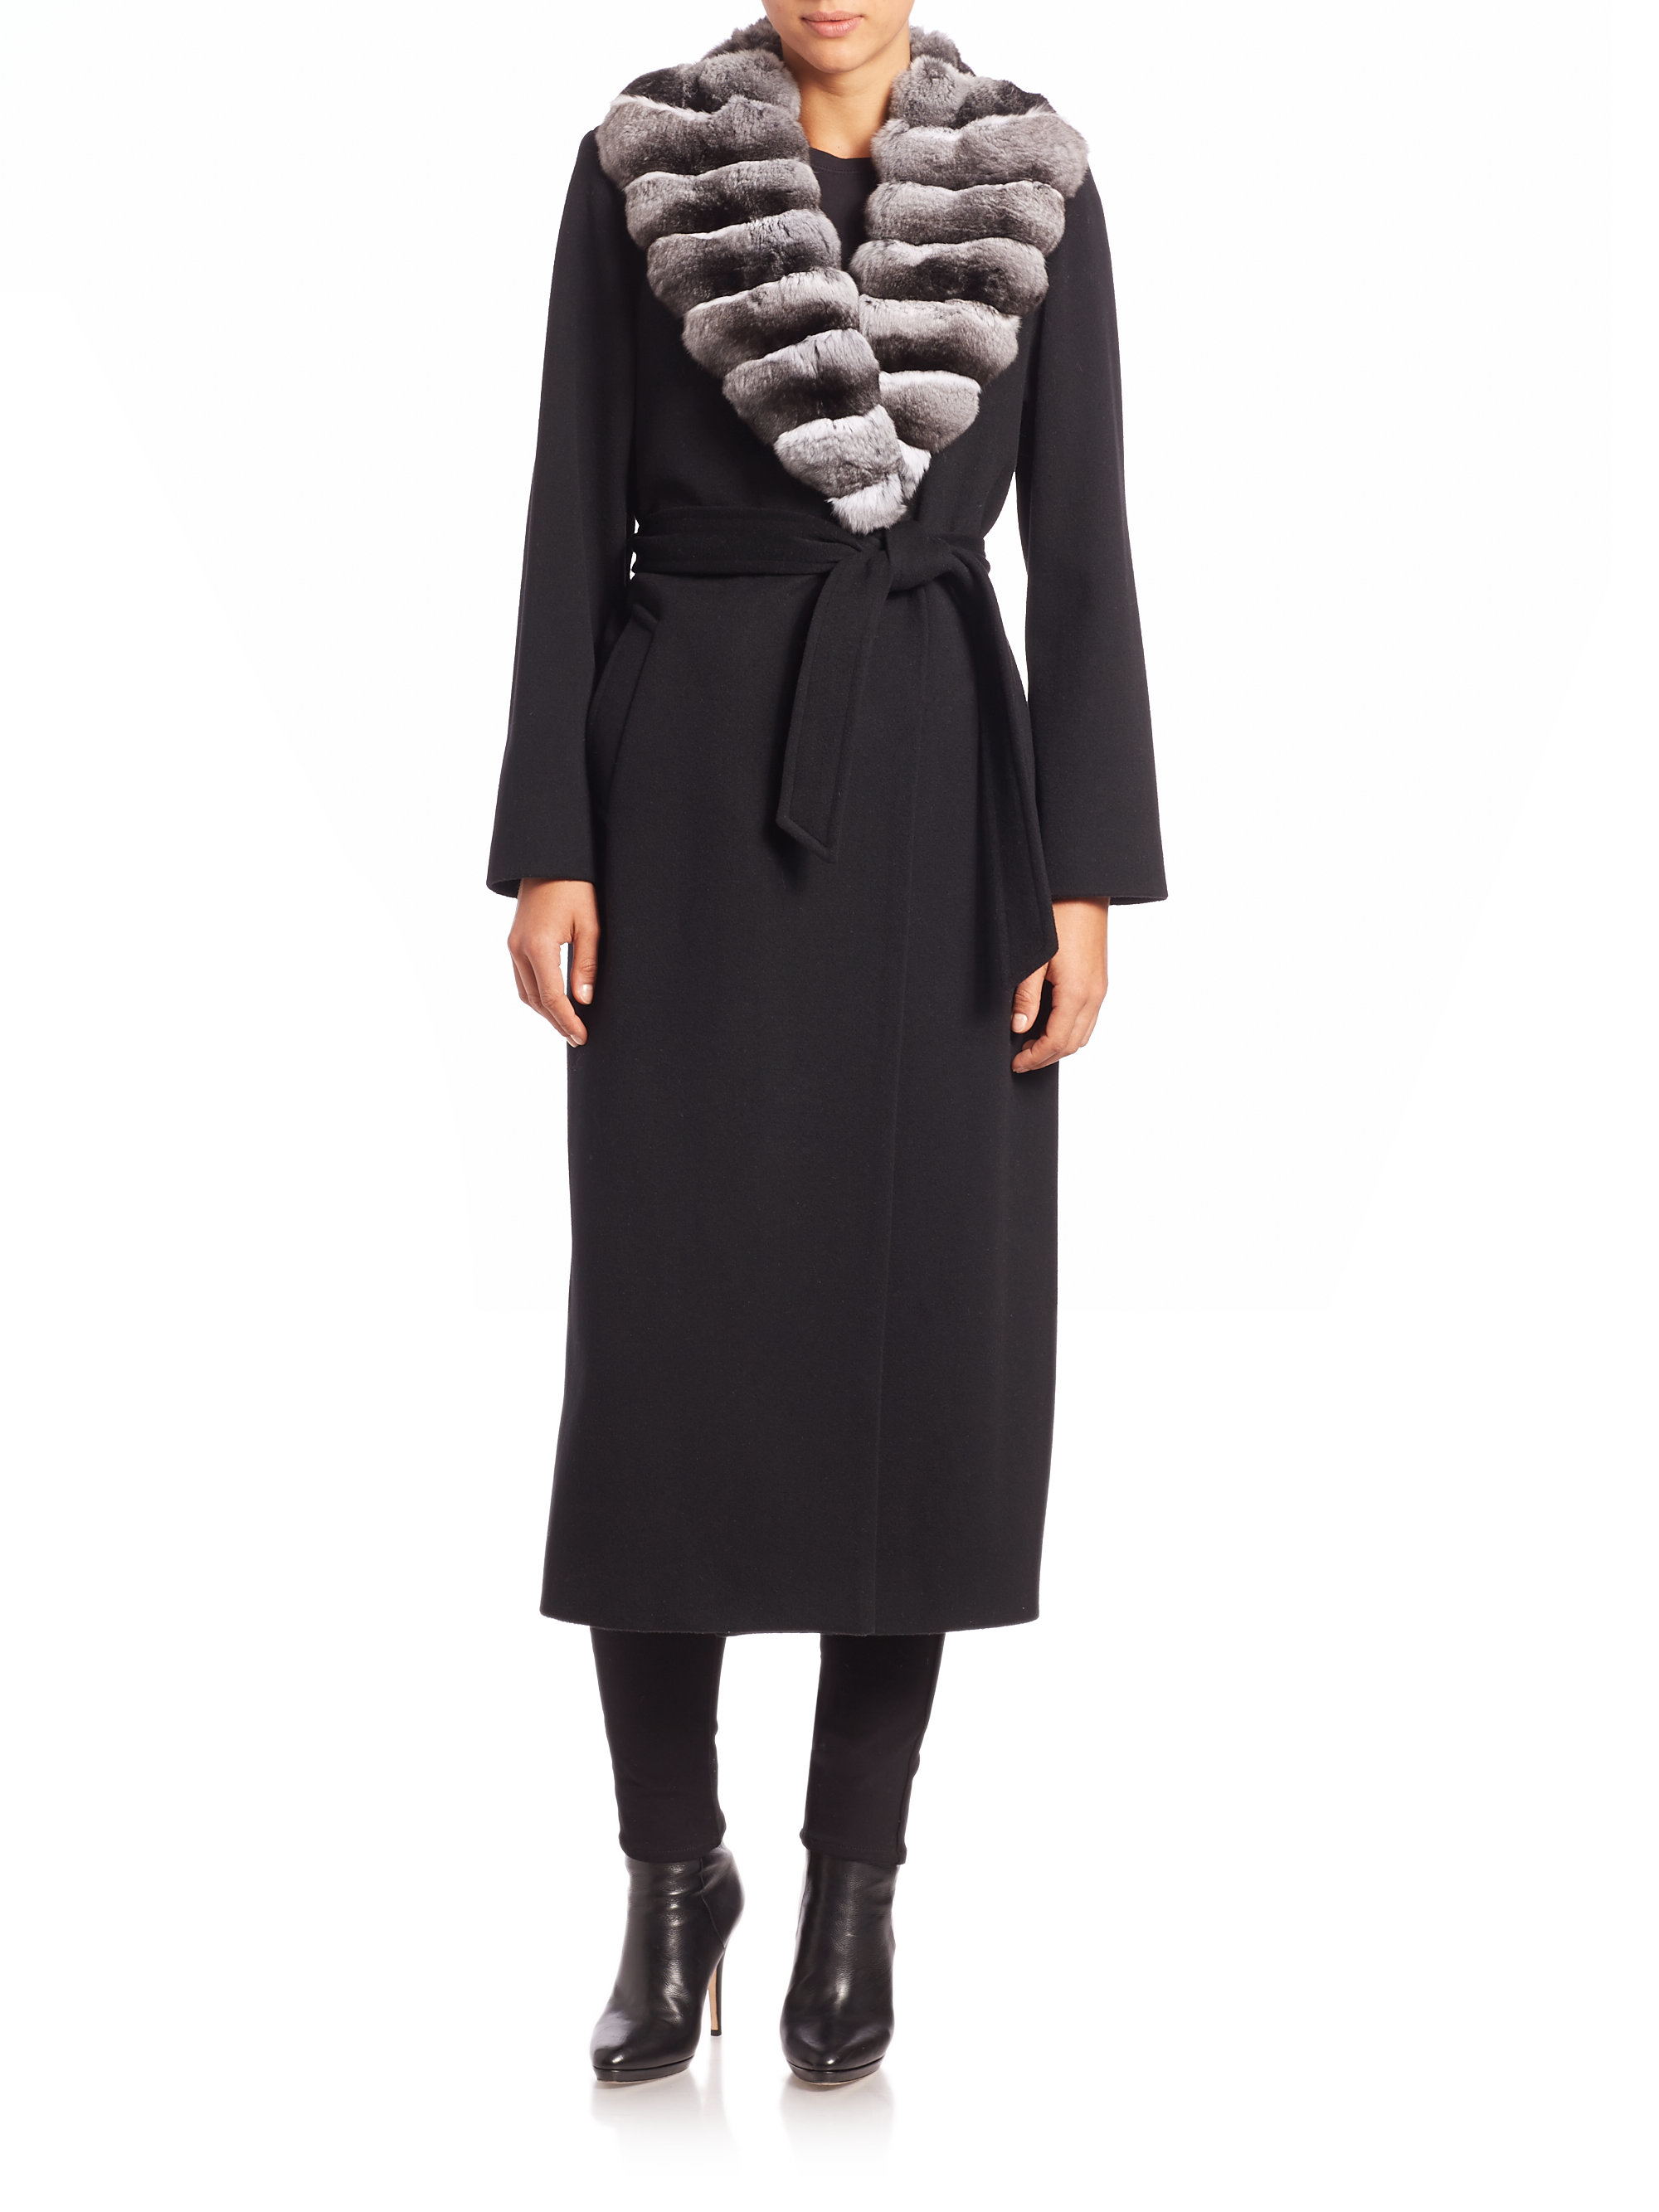 Sofia Cashmere Cashmere Fur Trimmed Long Wrap Coat In